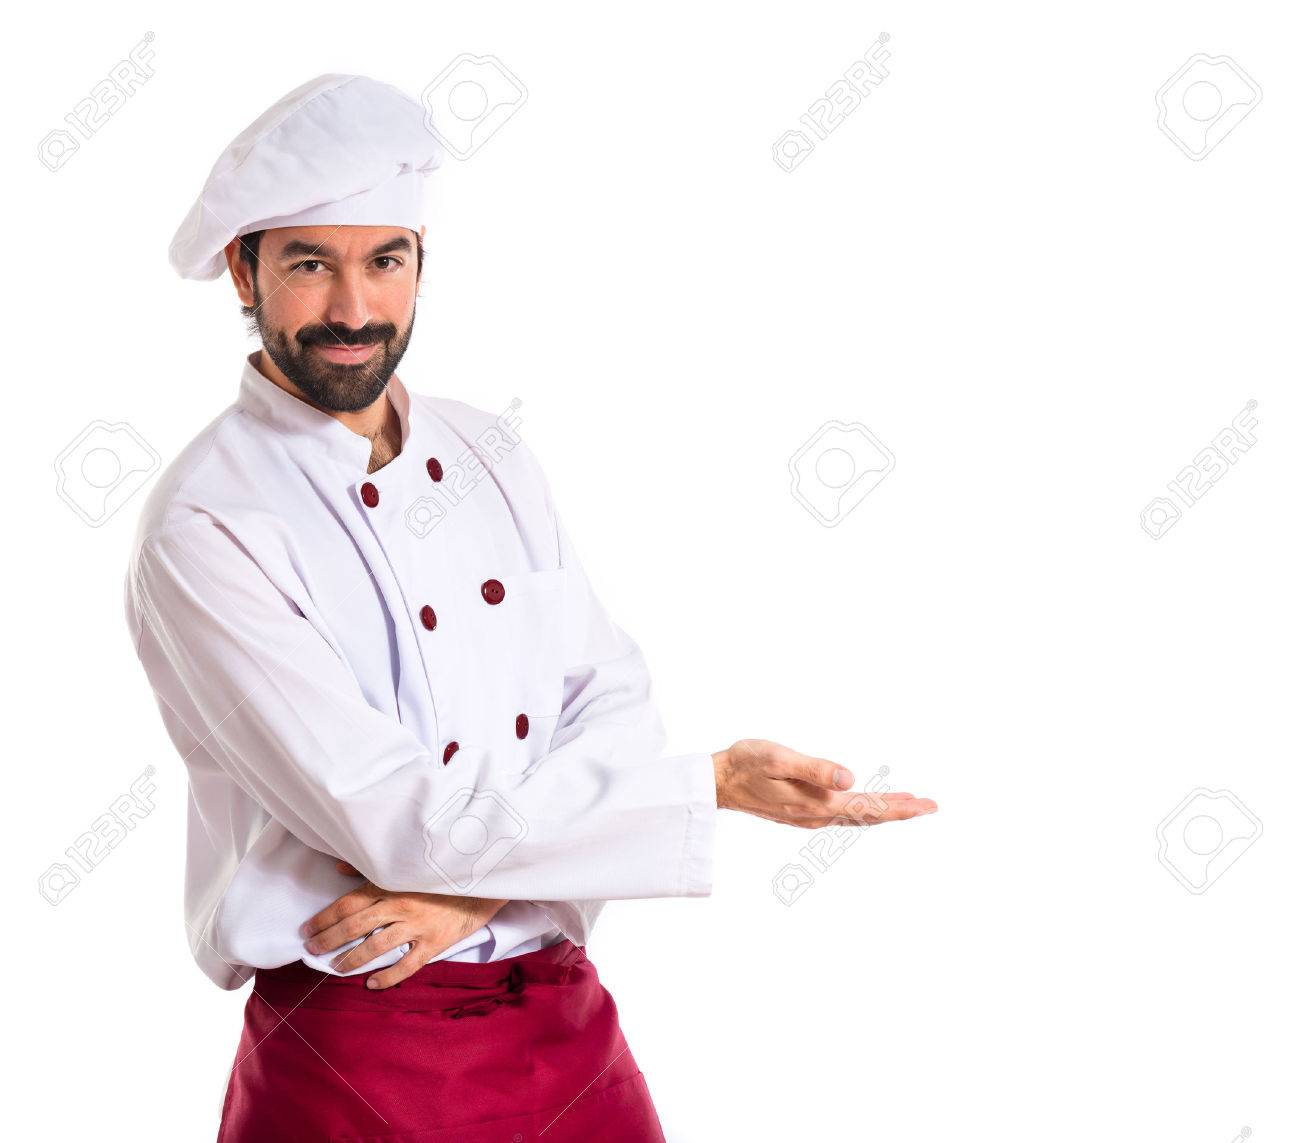 Chef presenting something over white background - 34710150